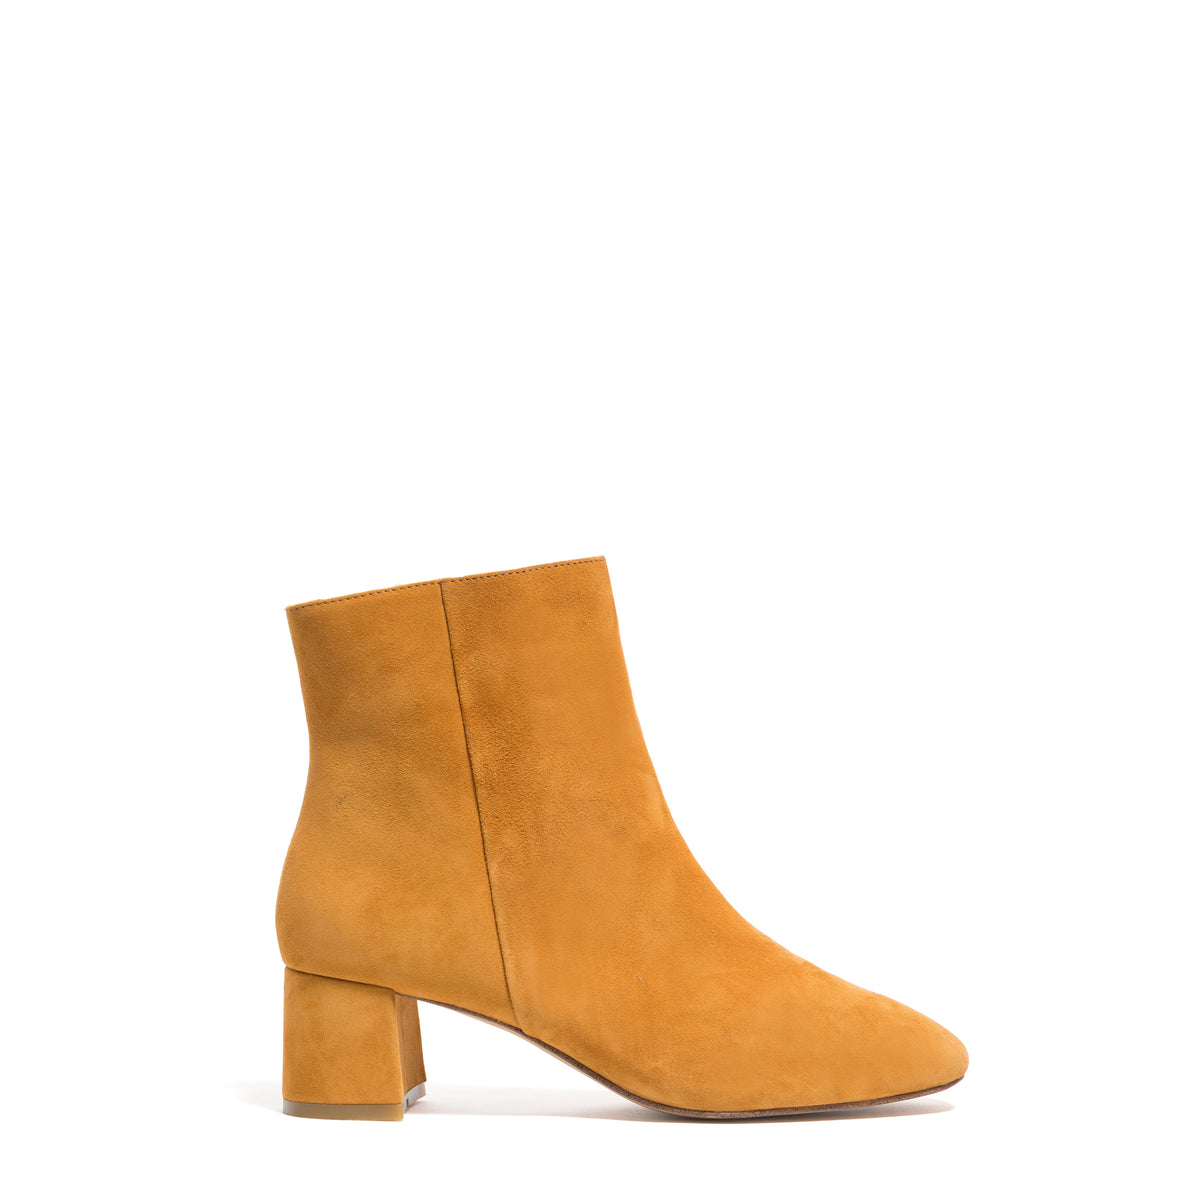 ANKLE BOOT, MUSTARD